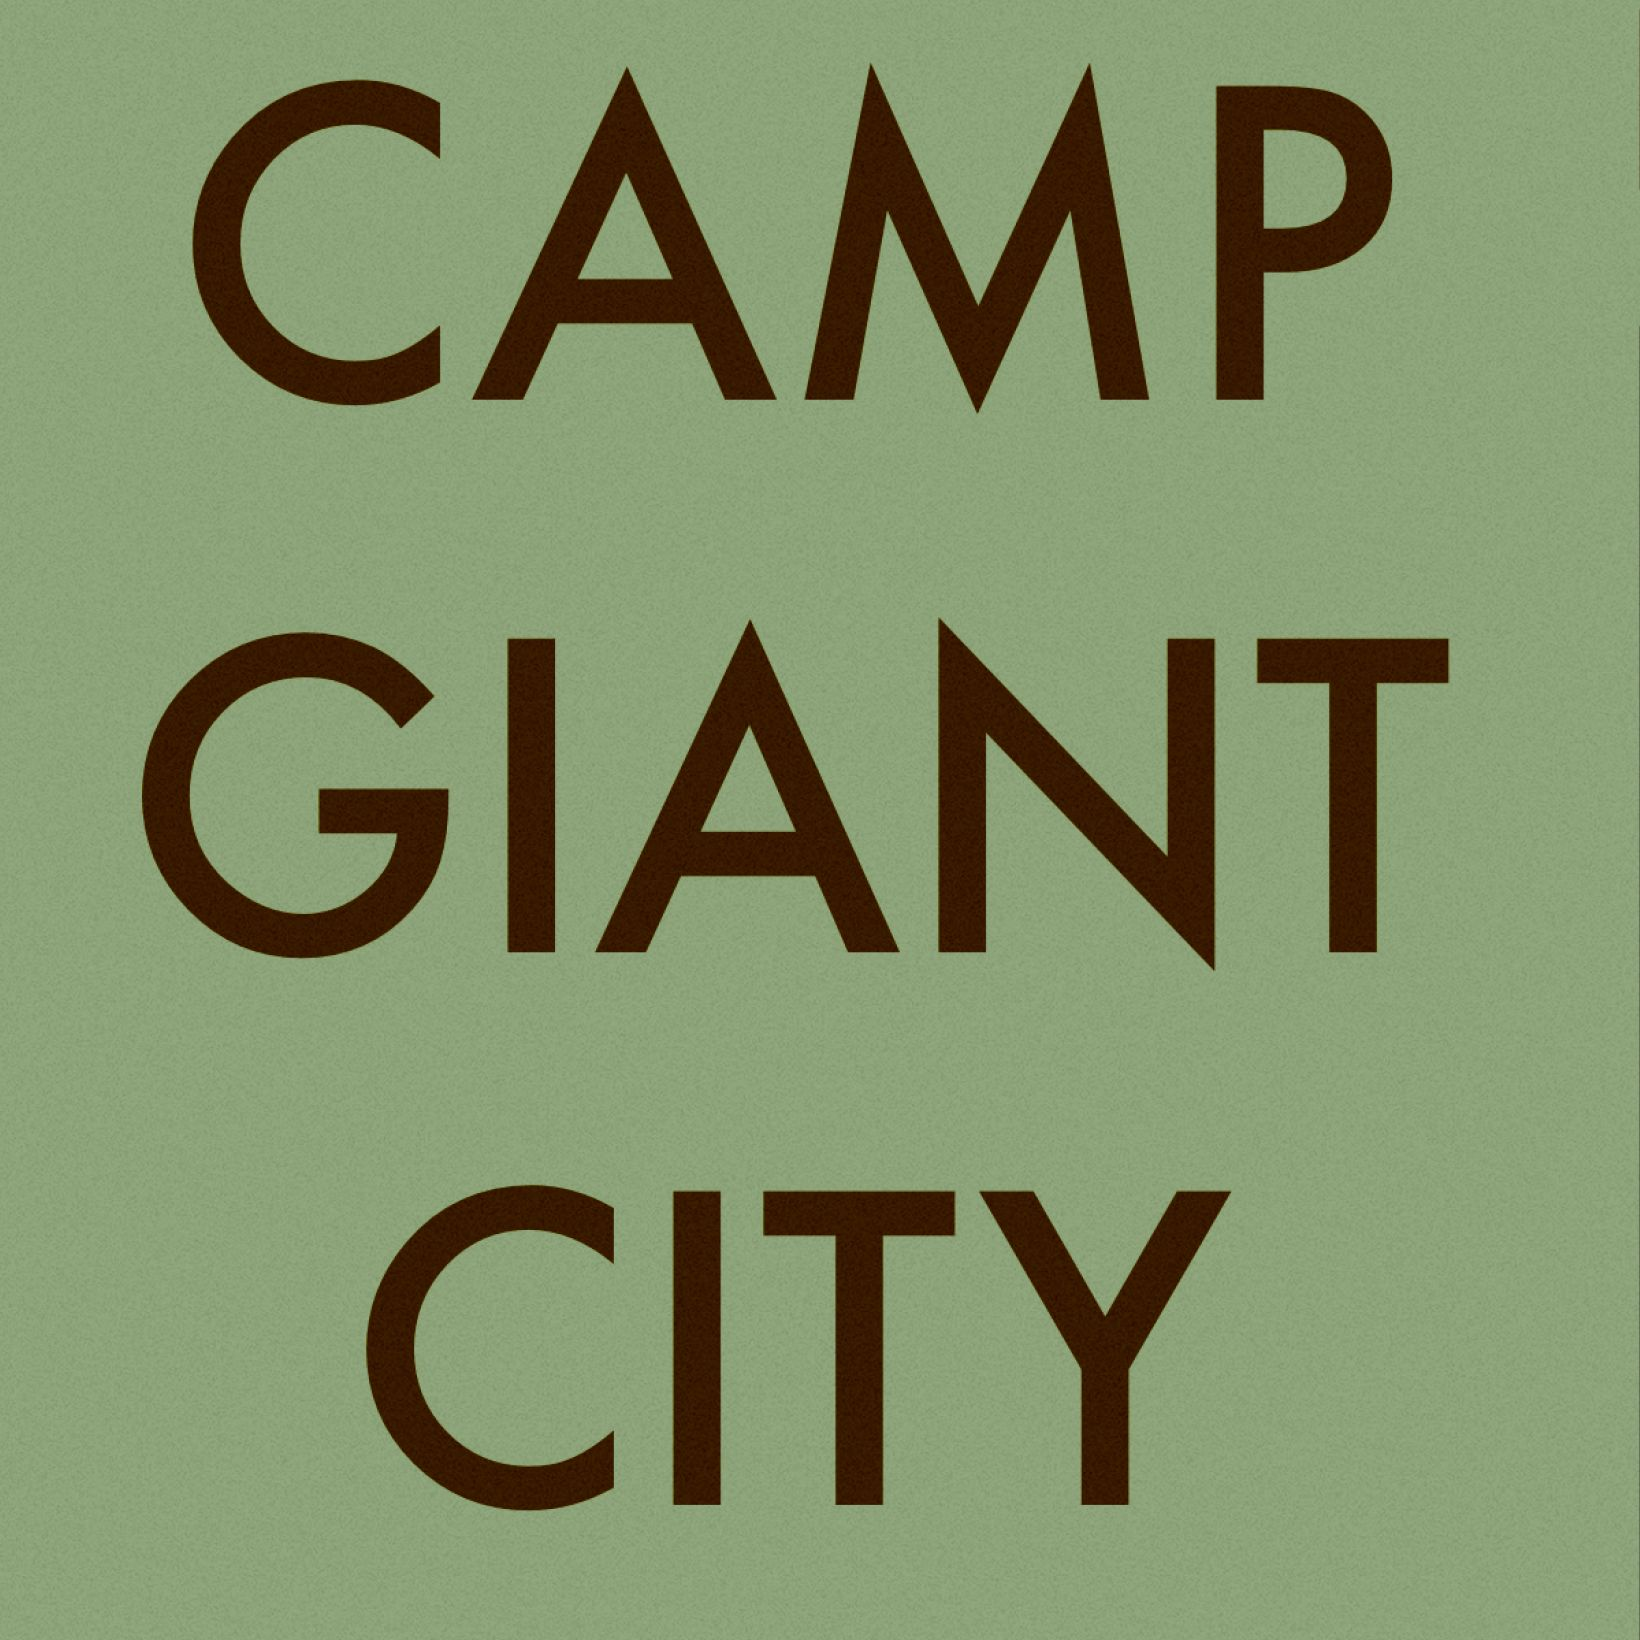 Camp Giant City